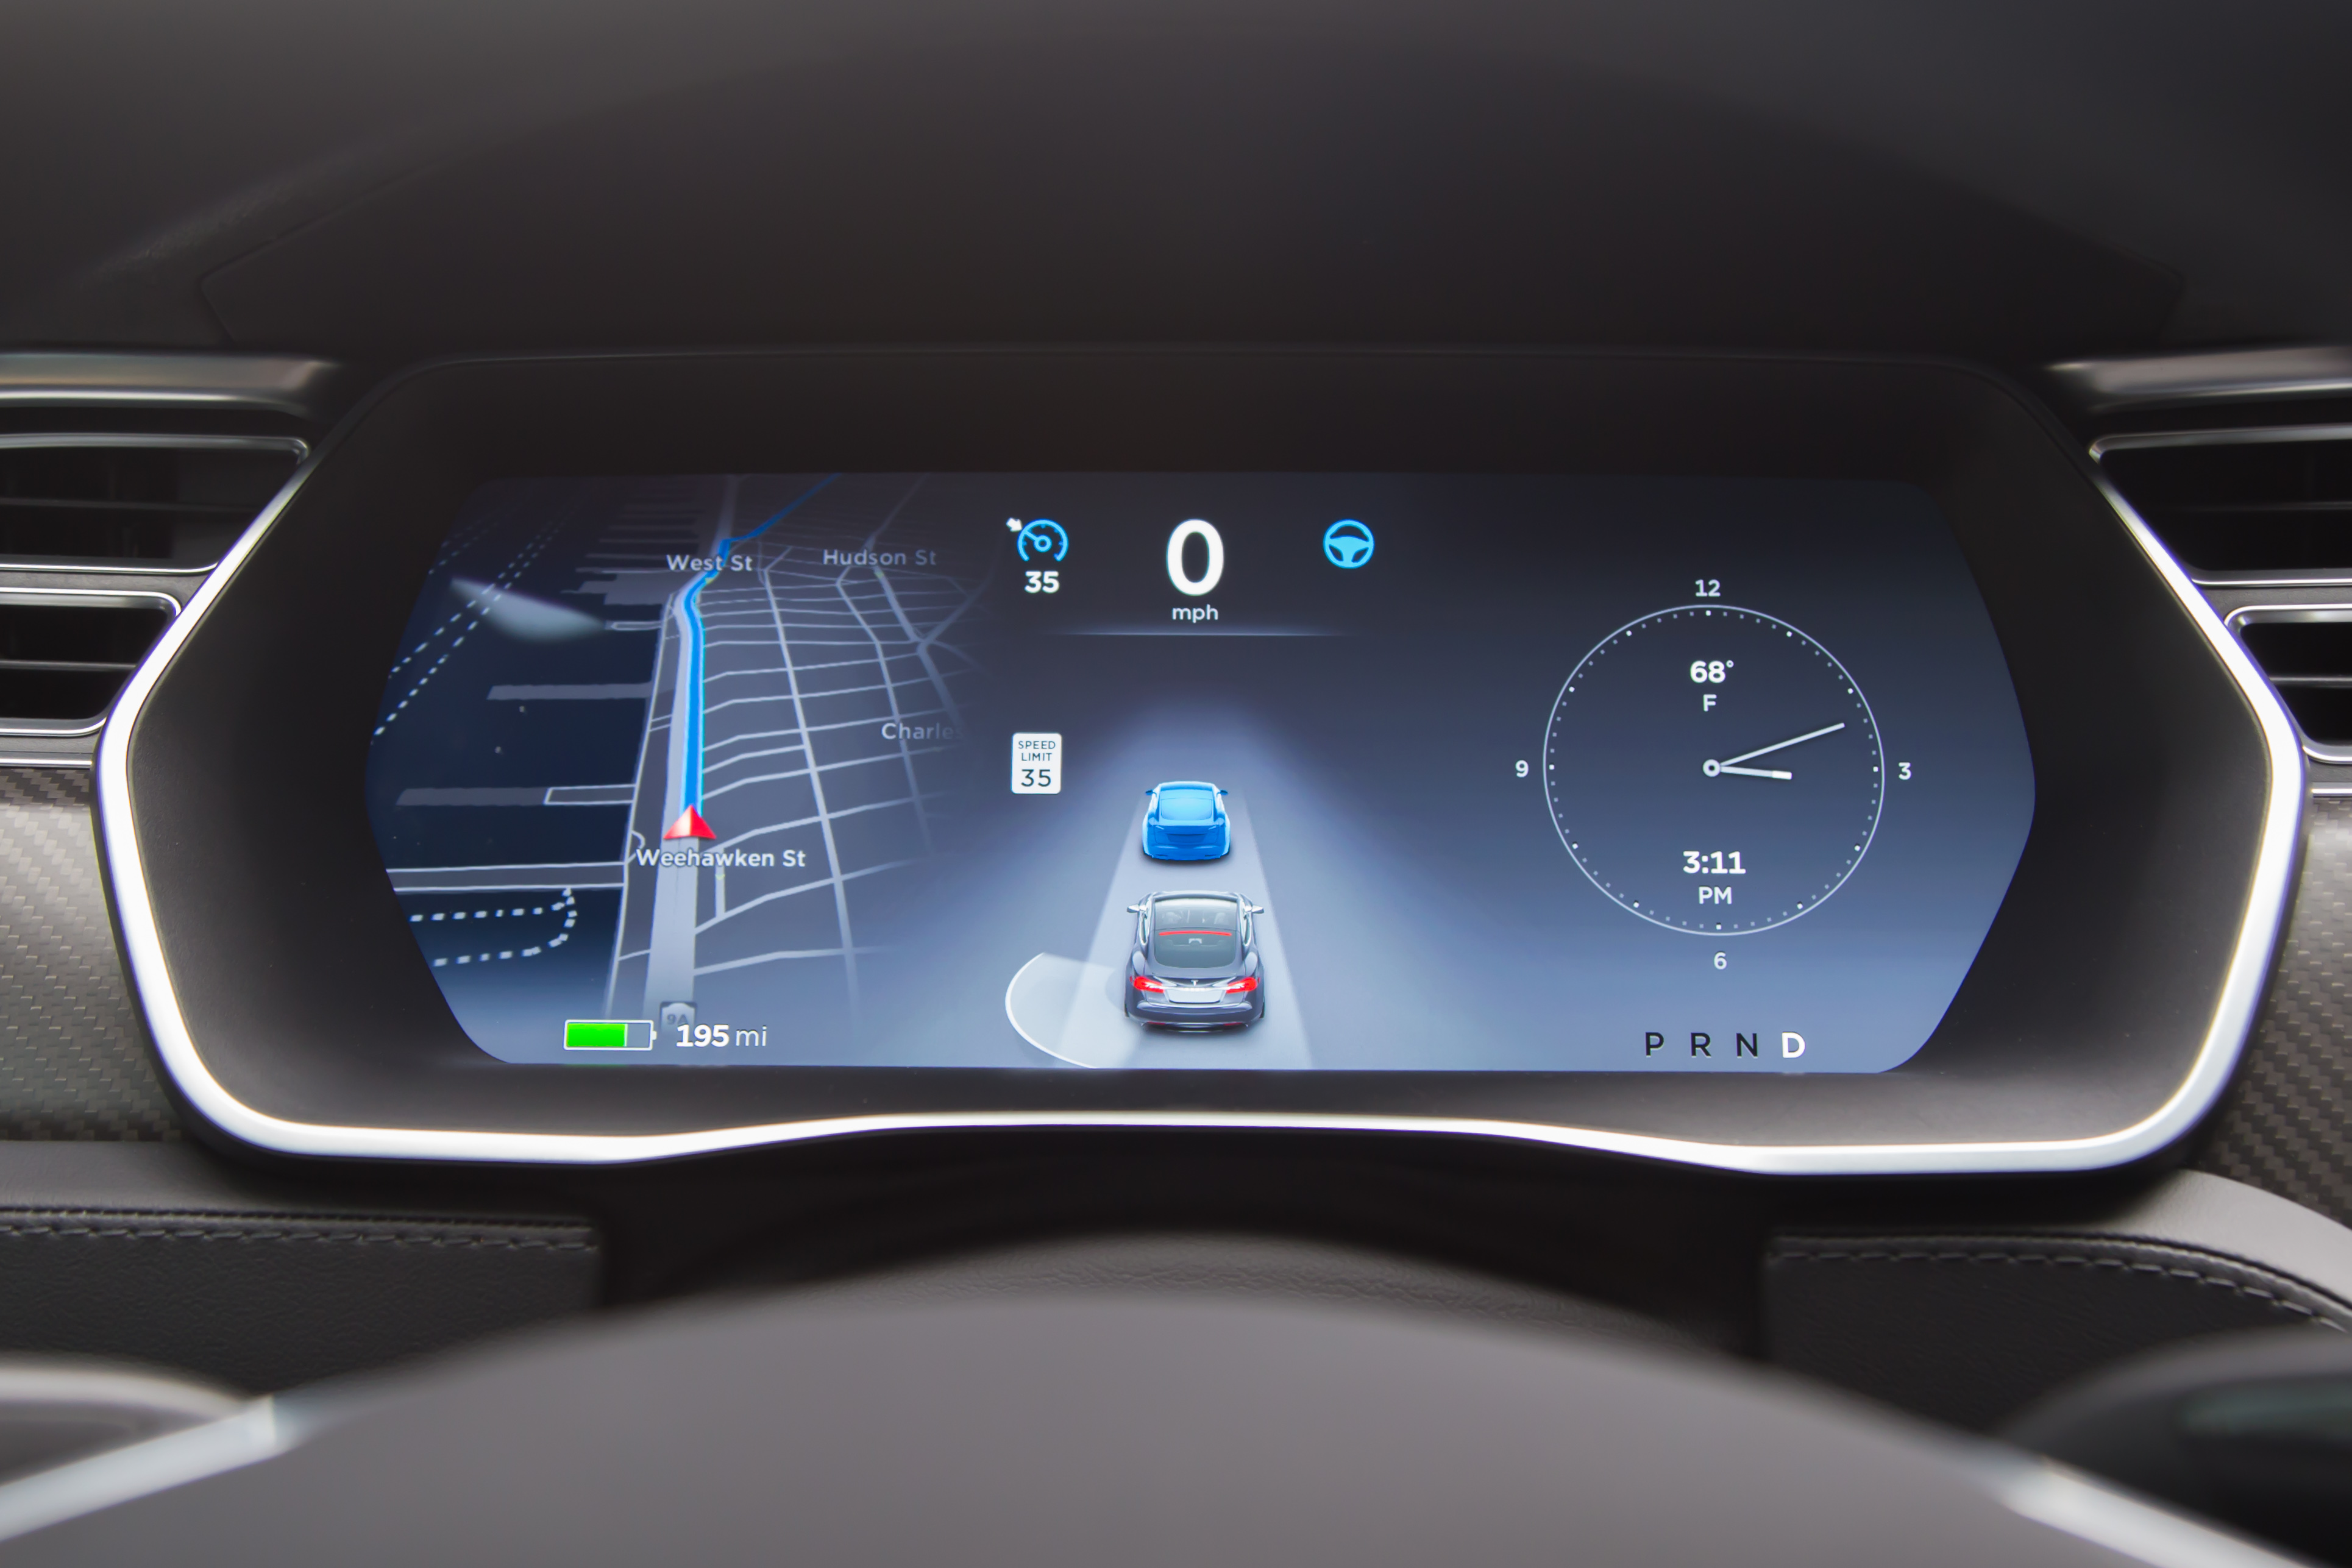 Tesla Is All About Autopilot And Radar In Firmware Ars Technica - All tesla models